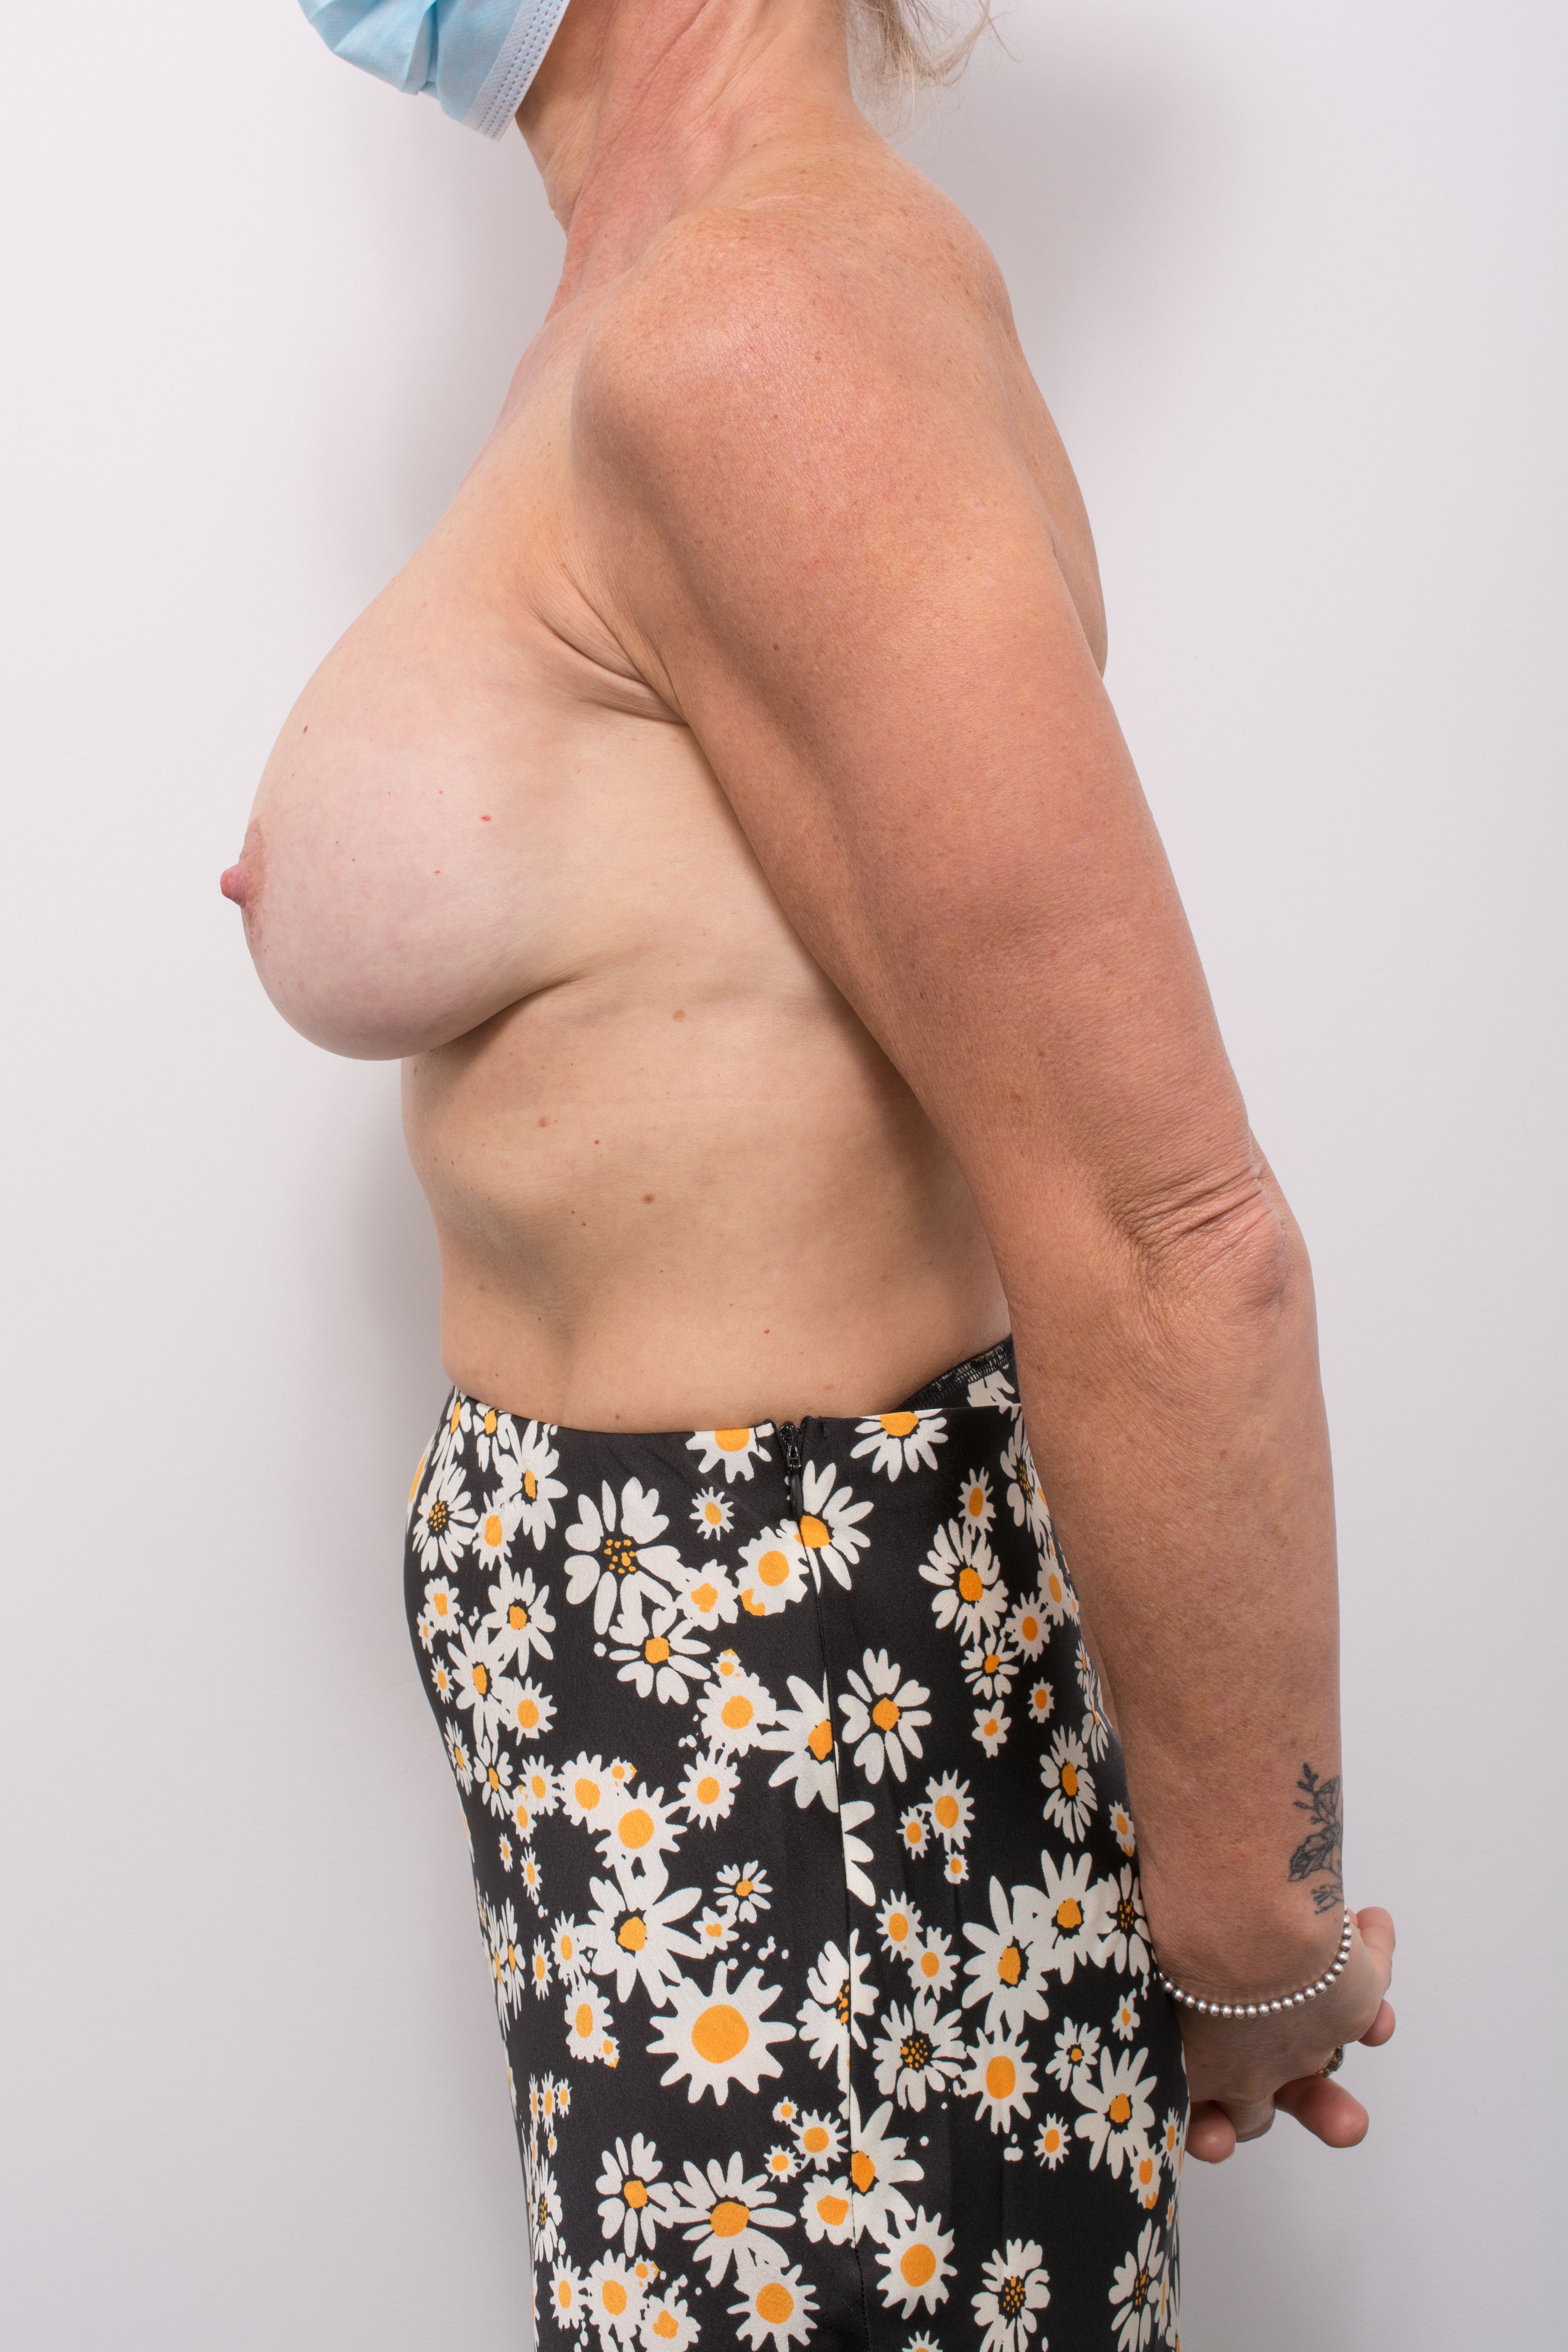 pre op removal of breast implants and mastopexy (5 of 5)